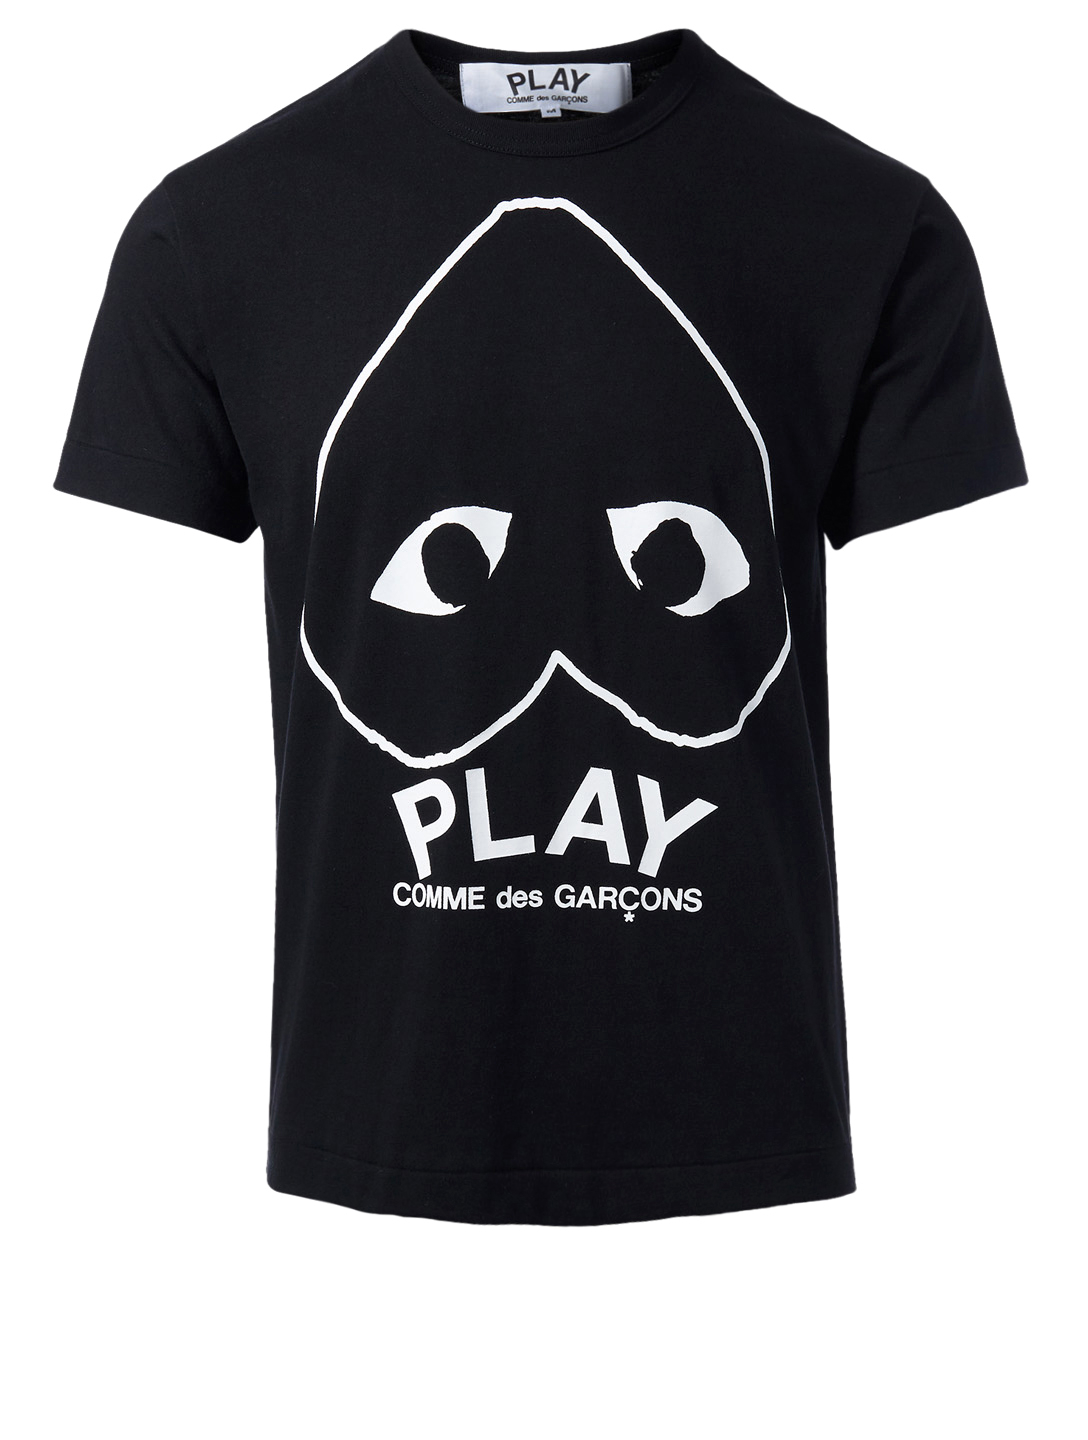 30738c4232f52 COMME DES GARÇONS PLAY Upside Down Heart T-Shirt Men s Black ...